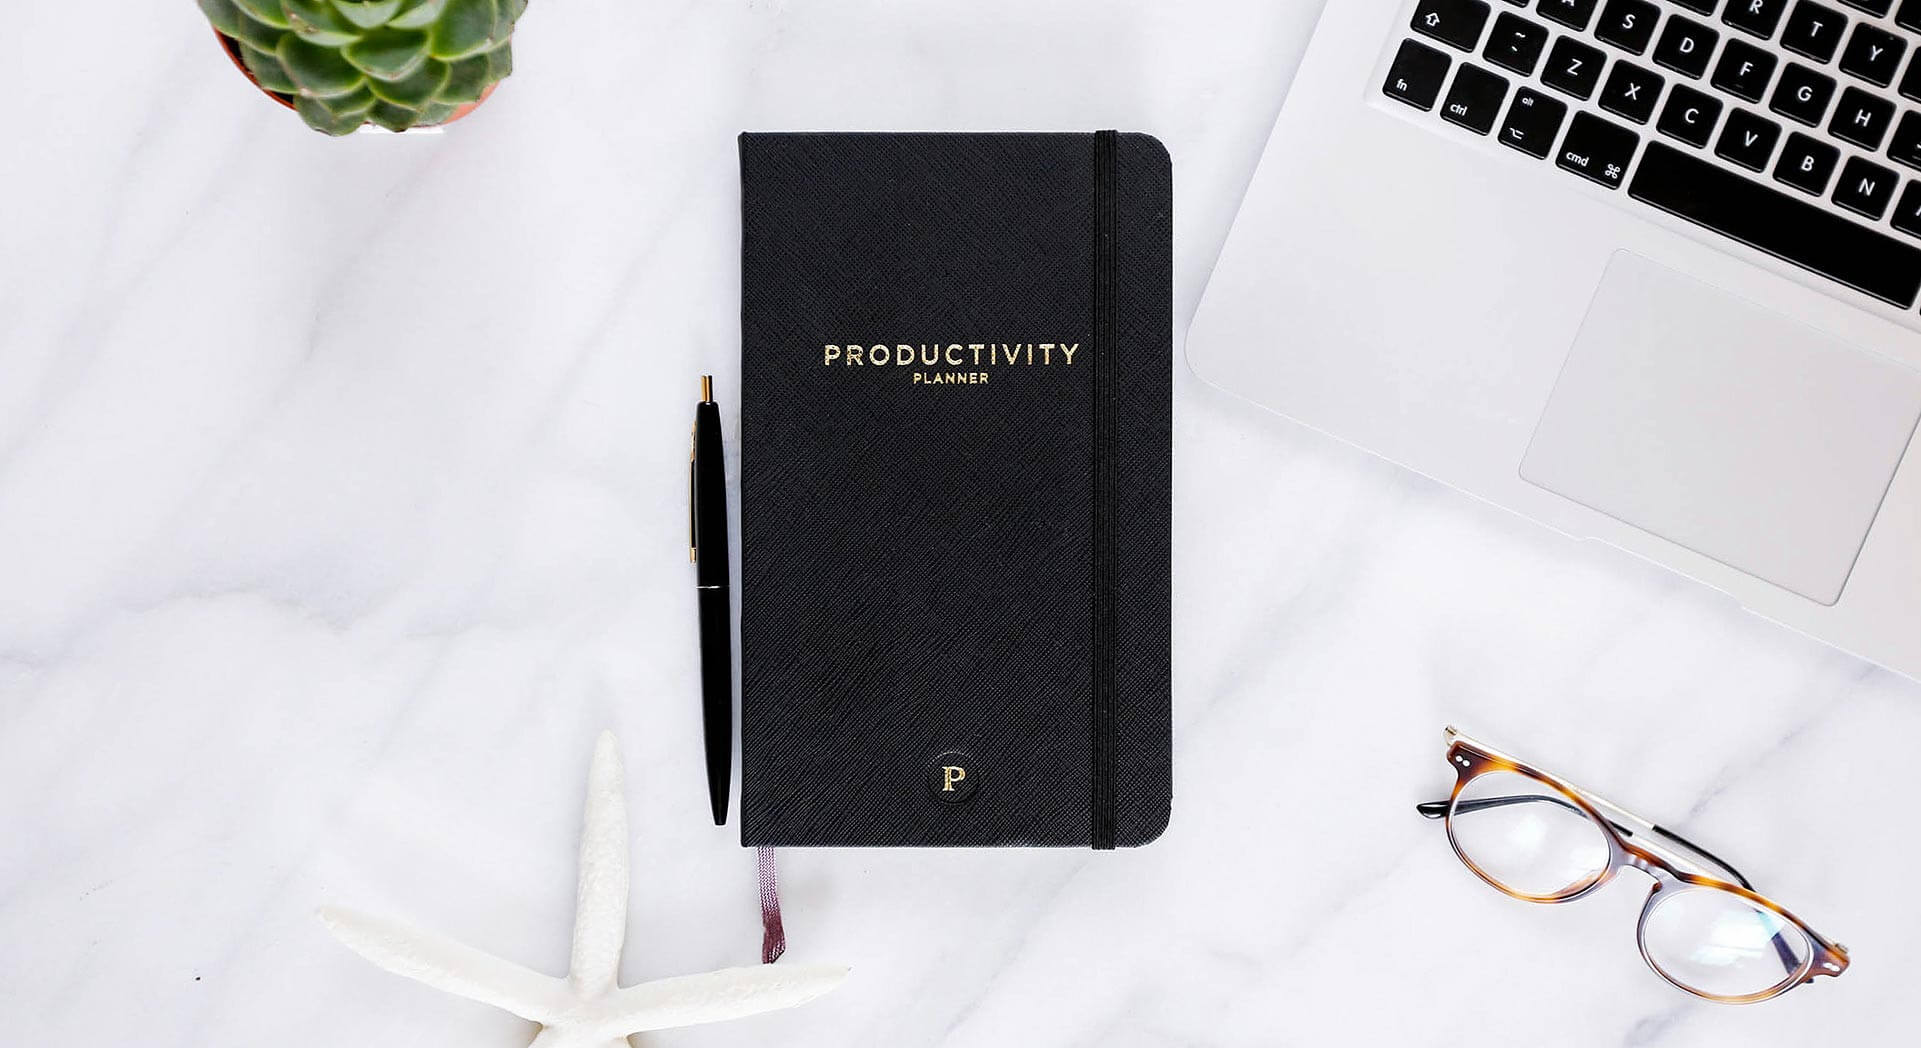 The Productivity Planner by Intelligent Change